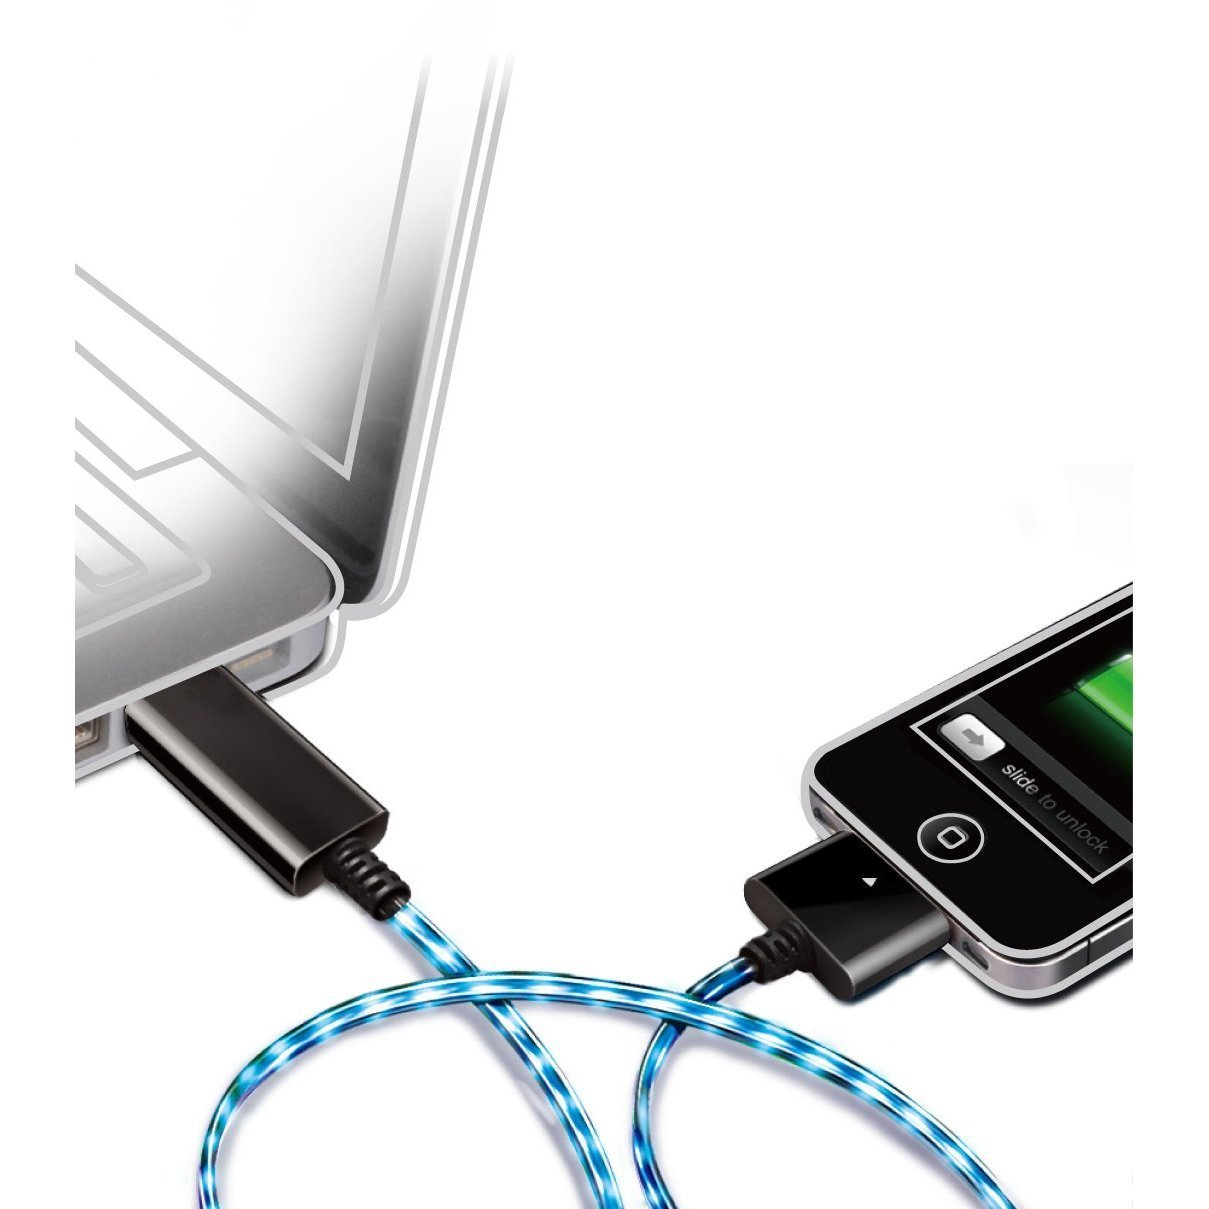 Luminescent Charge and Sync Cable